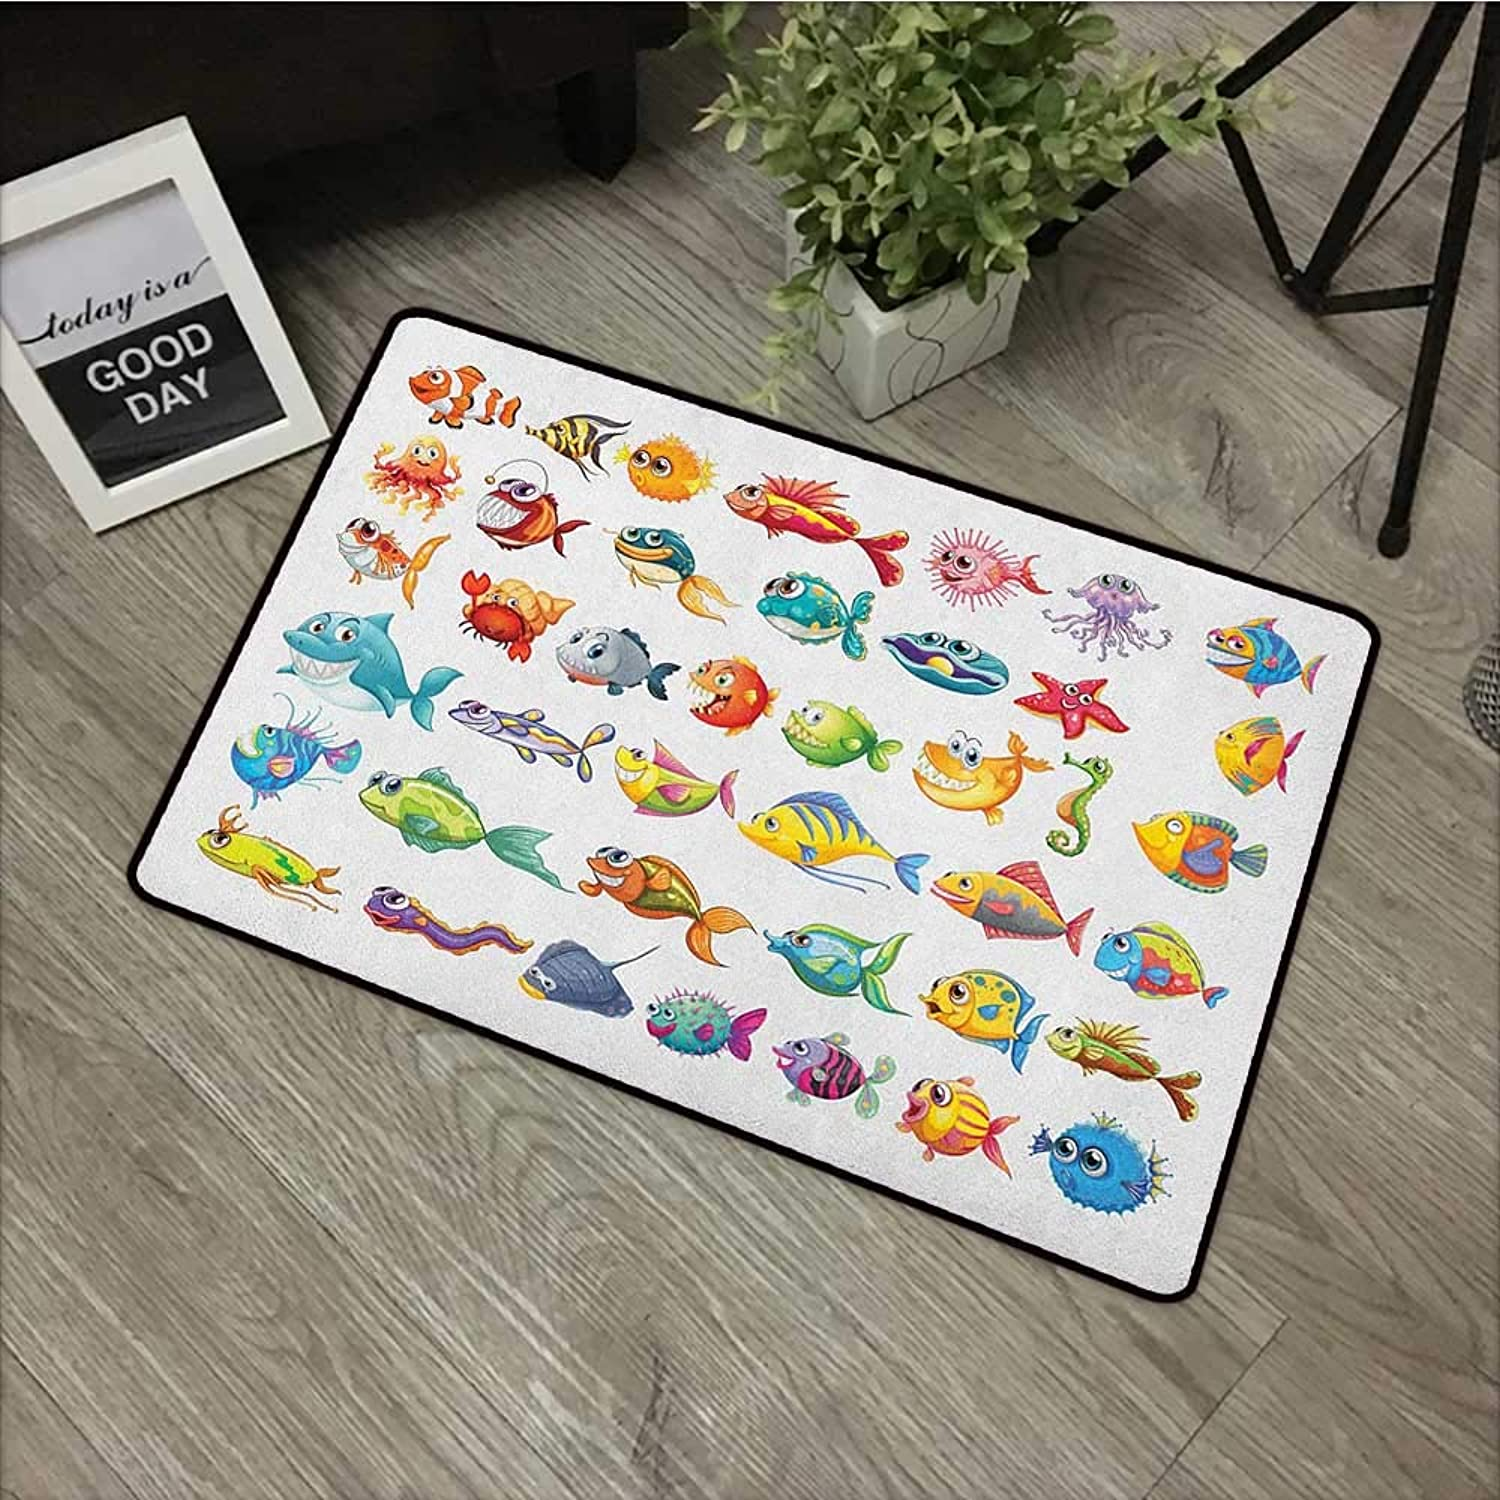 Bathroom anti-slip door mat W24 x L35 INCH Fish,Collection of Sea Creatures Cartoon Style Vivid colors Happy Fish Lined Up Abstract, Multicolor Non-slip, with non-slip backing,Non-slip Door Mat Carpet